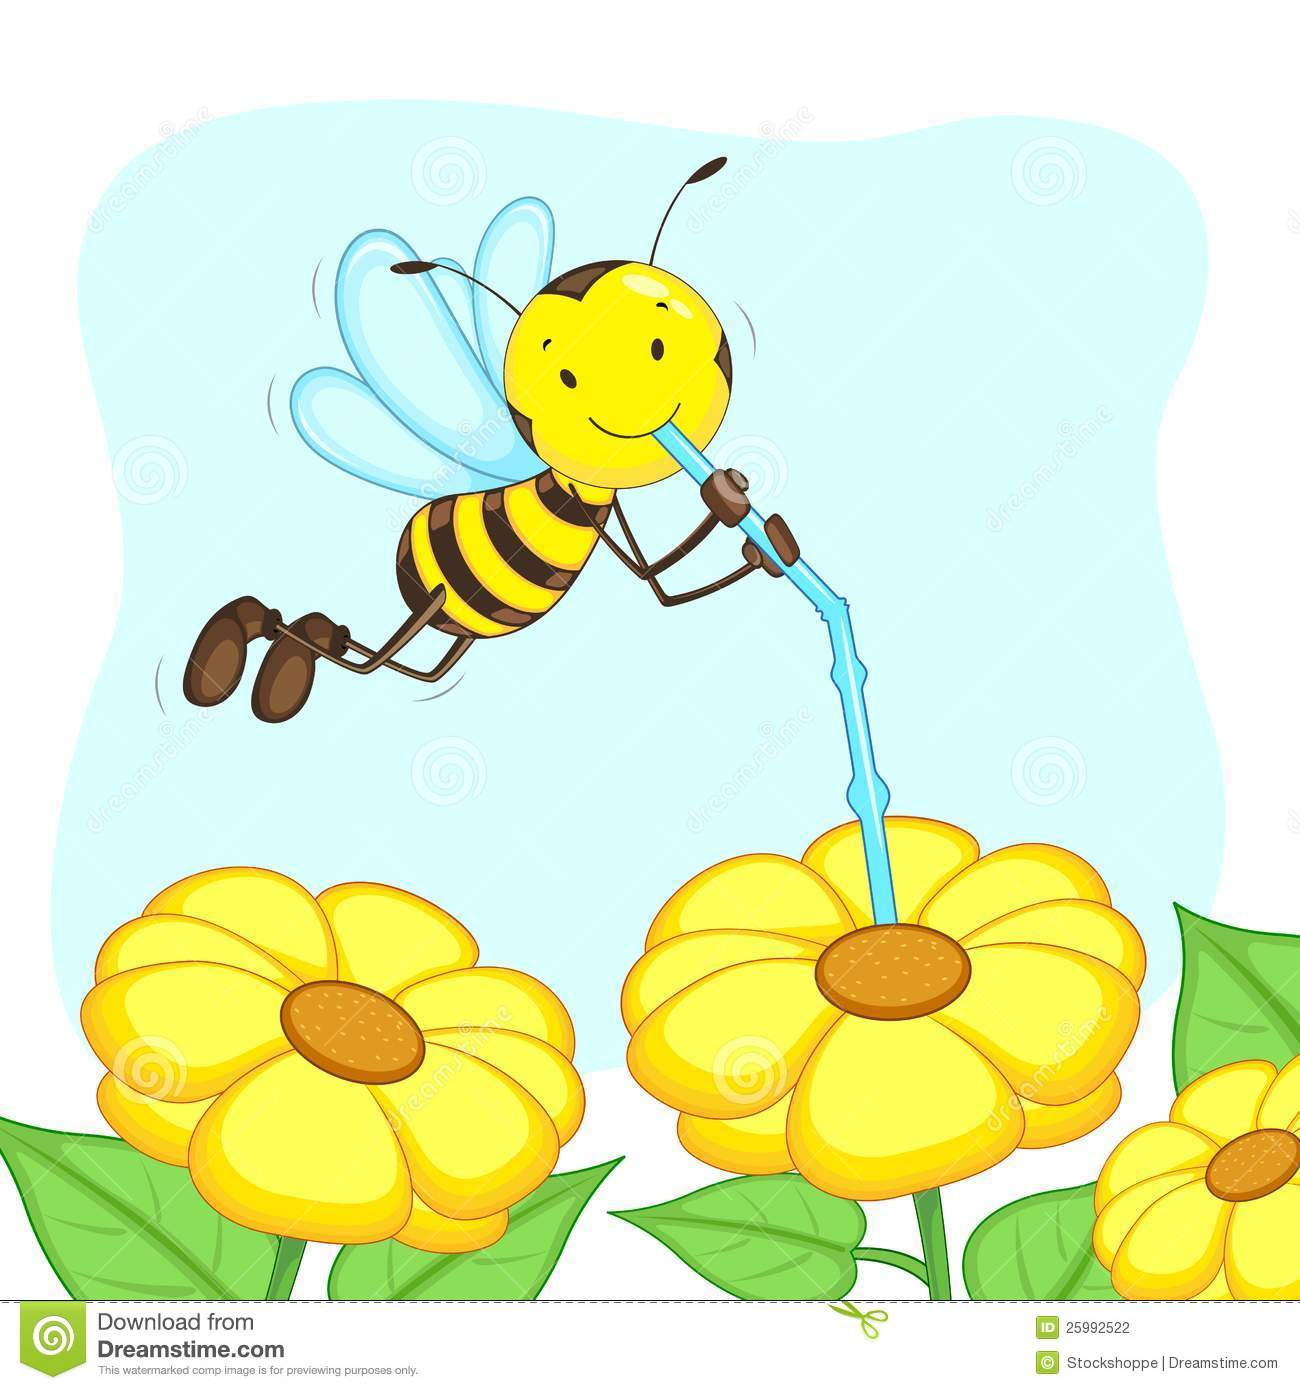 Honey bee on flower clipart.